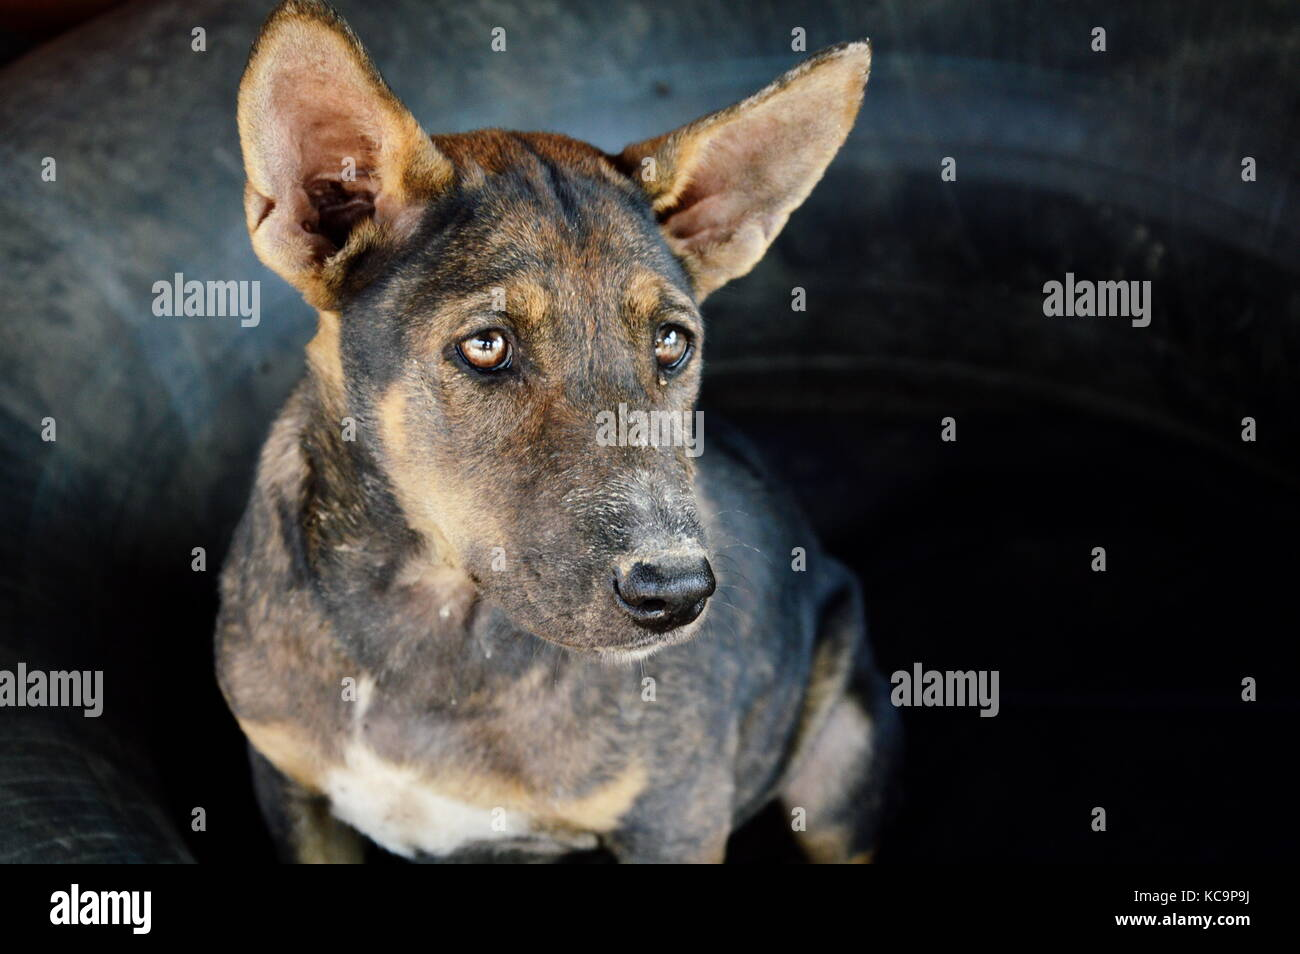 street dog in Thailand - Stock Image